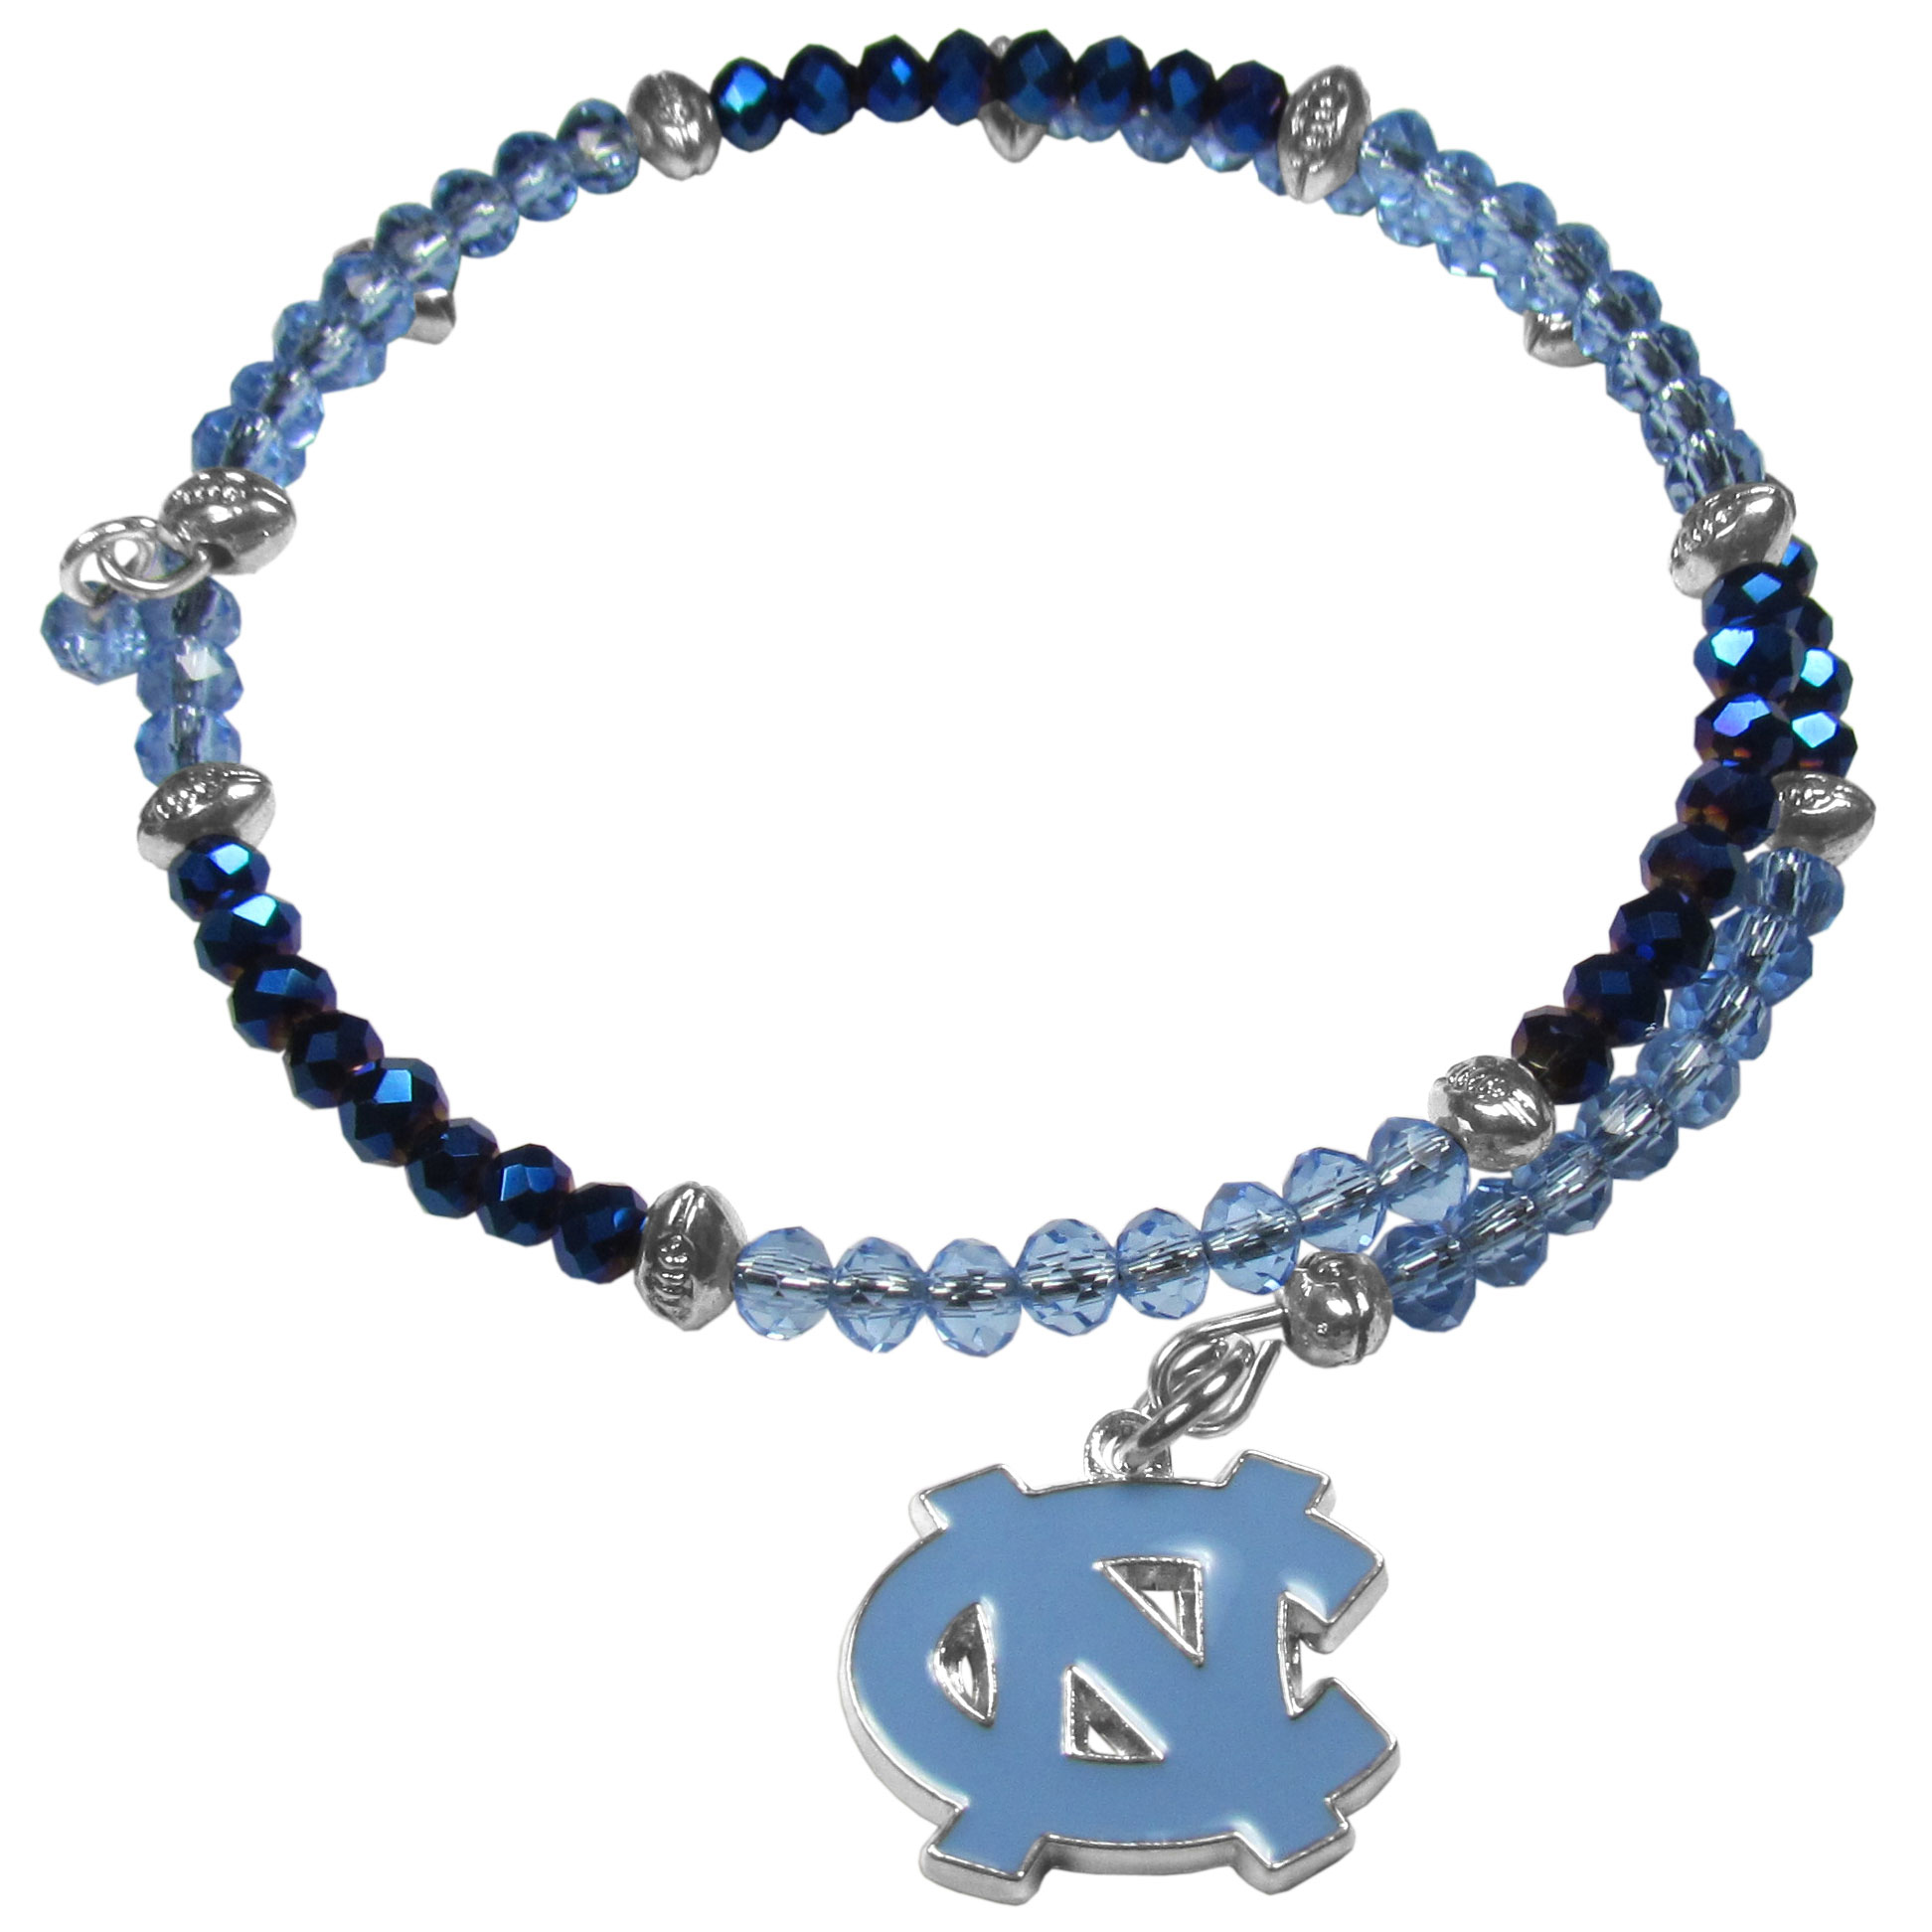 N. Carolina Tar Heels Crystal Memory Wire Bracelet - Our N. Carolina Tar Heels memory wire crystal bracelet is trendy way to show off your love of the game. The double wrap bracelet is completely covered in 4 mm crystals that are broken up with adorable football beads creating a designer look with a sporty twist. The bracelet features a fully cast, metal team charm that has expertly enameled team colors. This fashion jewelry piece is a must-have for the die-hard fan that chic look that can dress up any outfit.